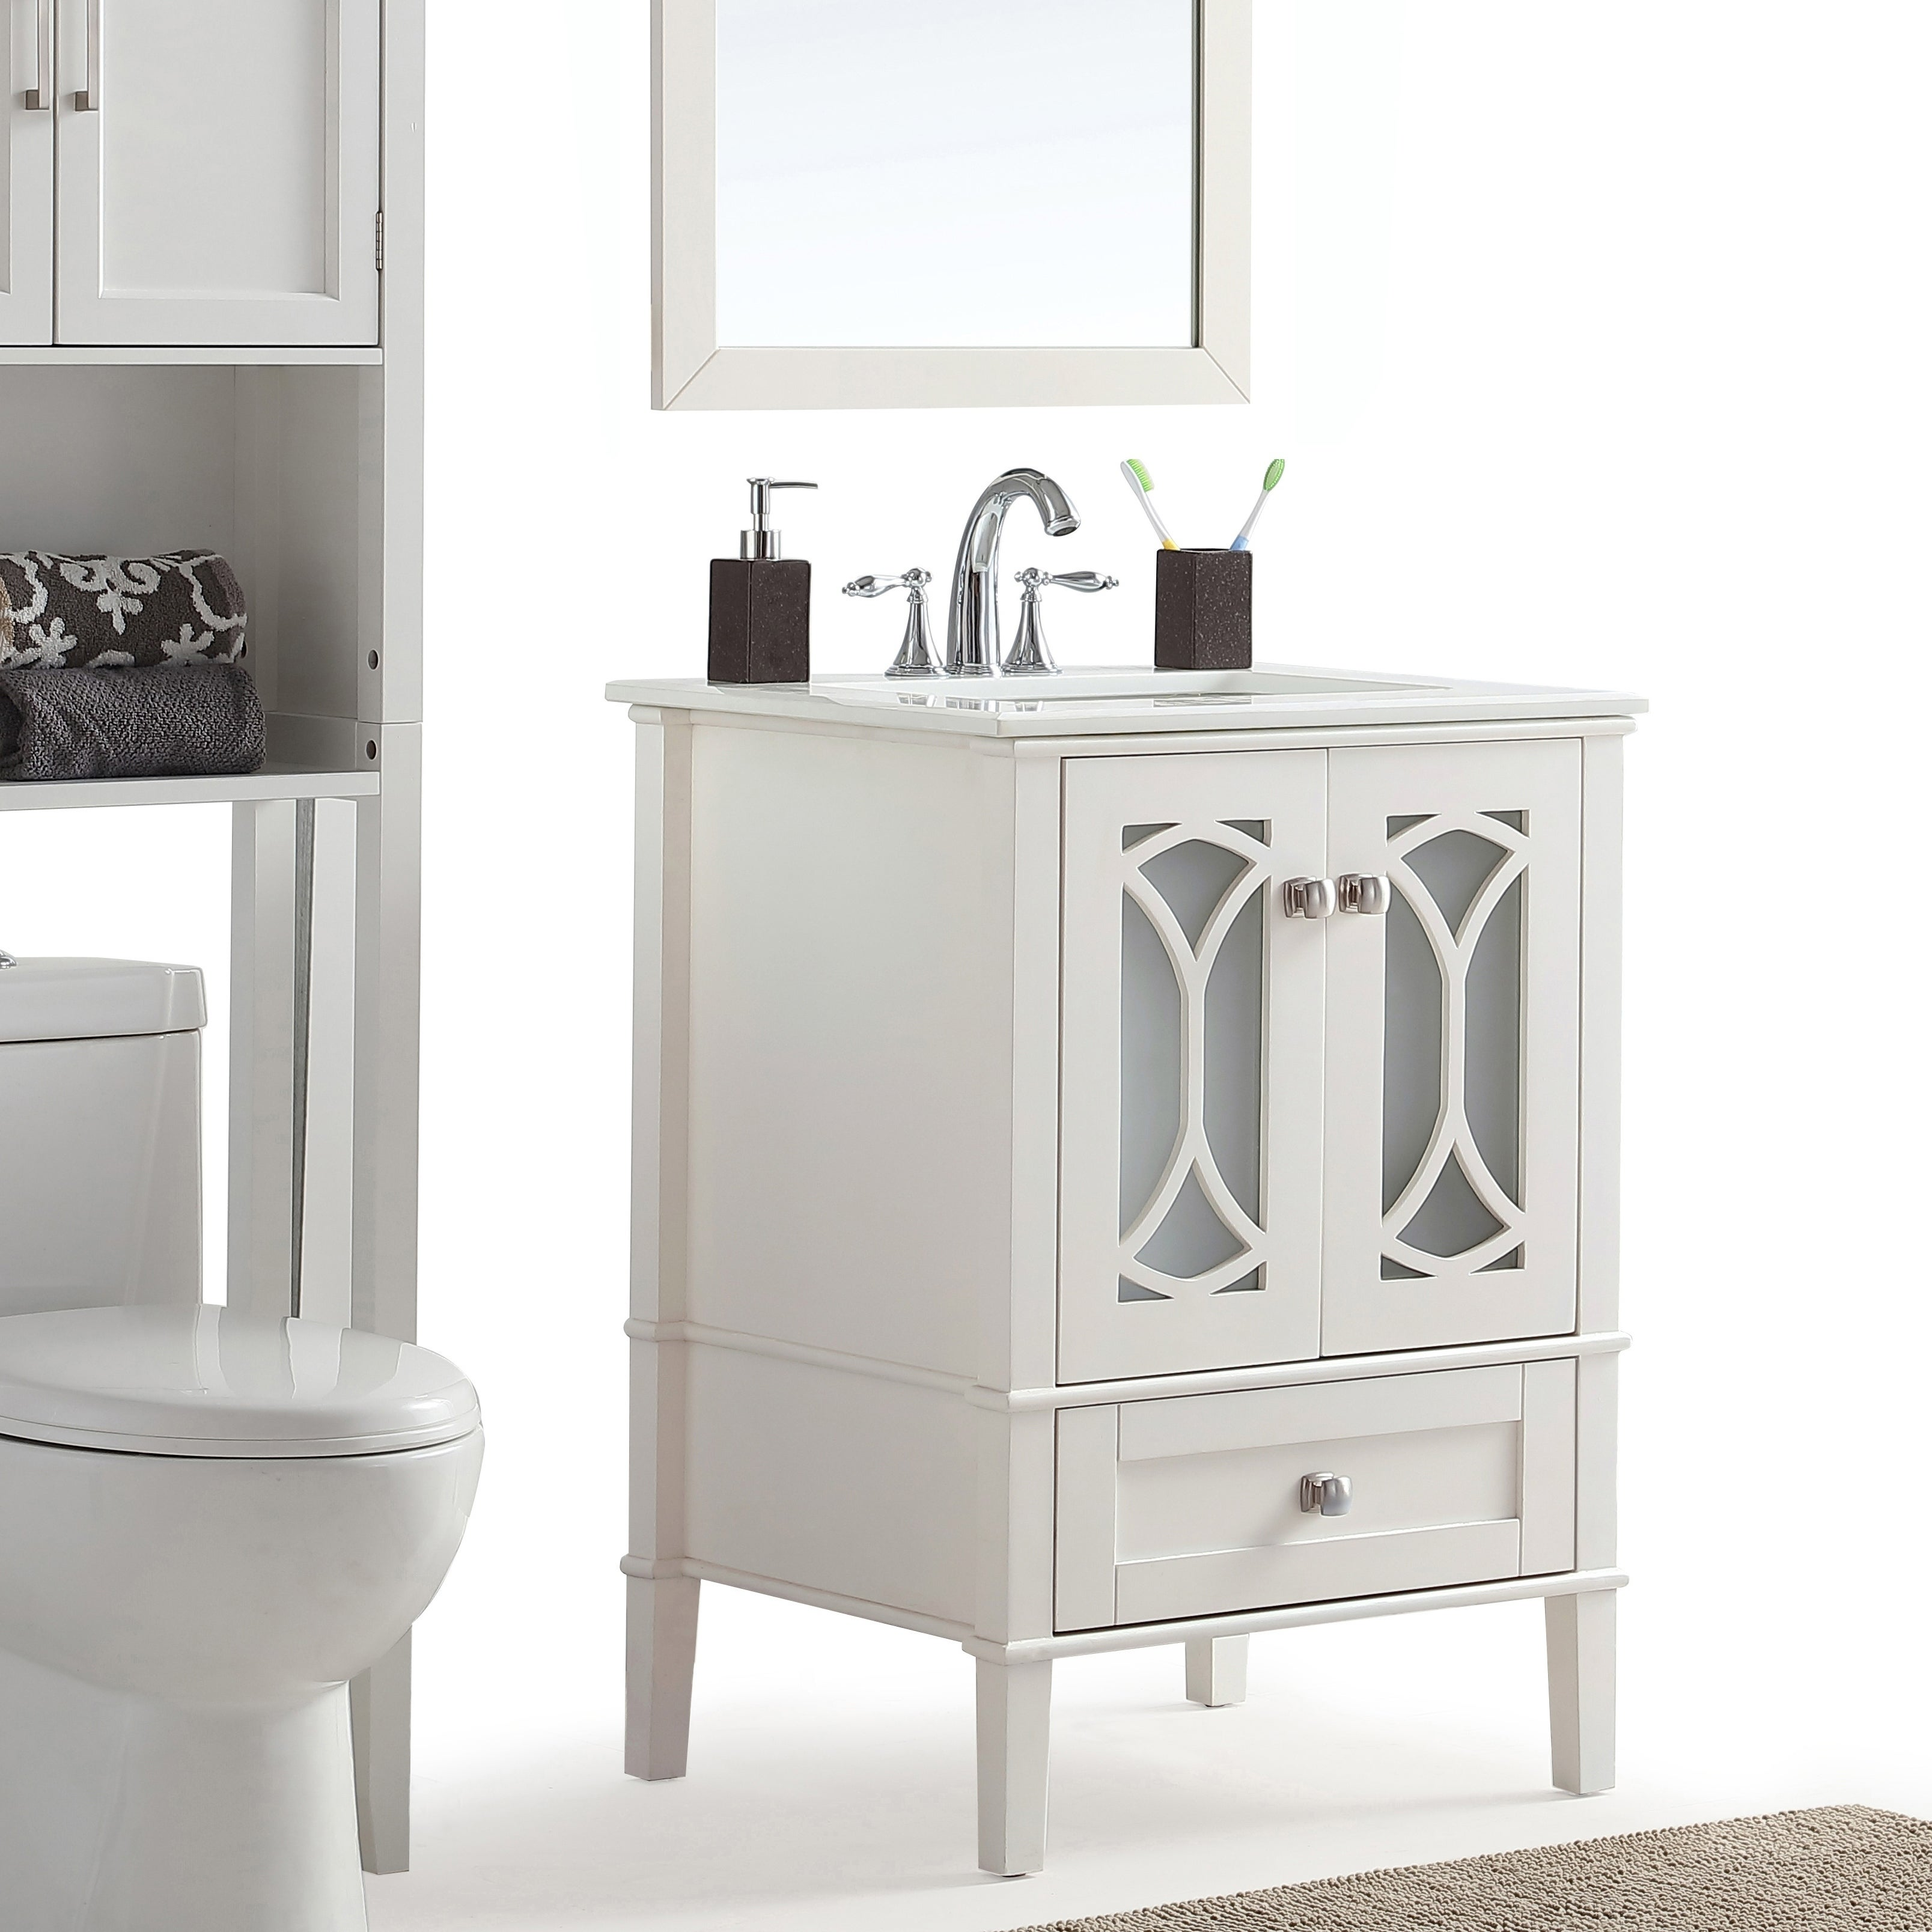 Wyndenhall Mulberry 24 Inch Contemporary Bath Vanity In Soft White With Engineered Quartz Marble Top